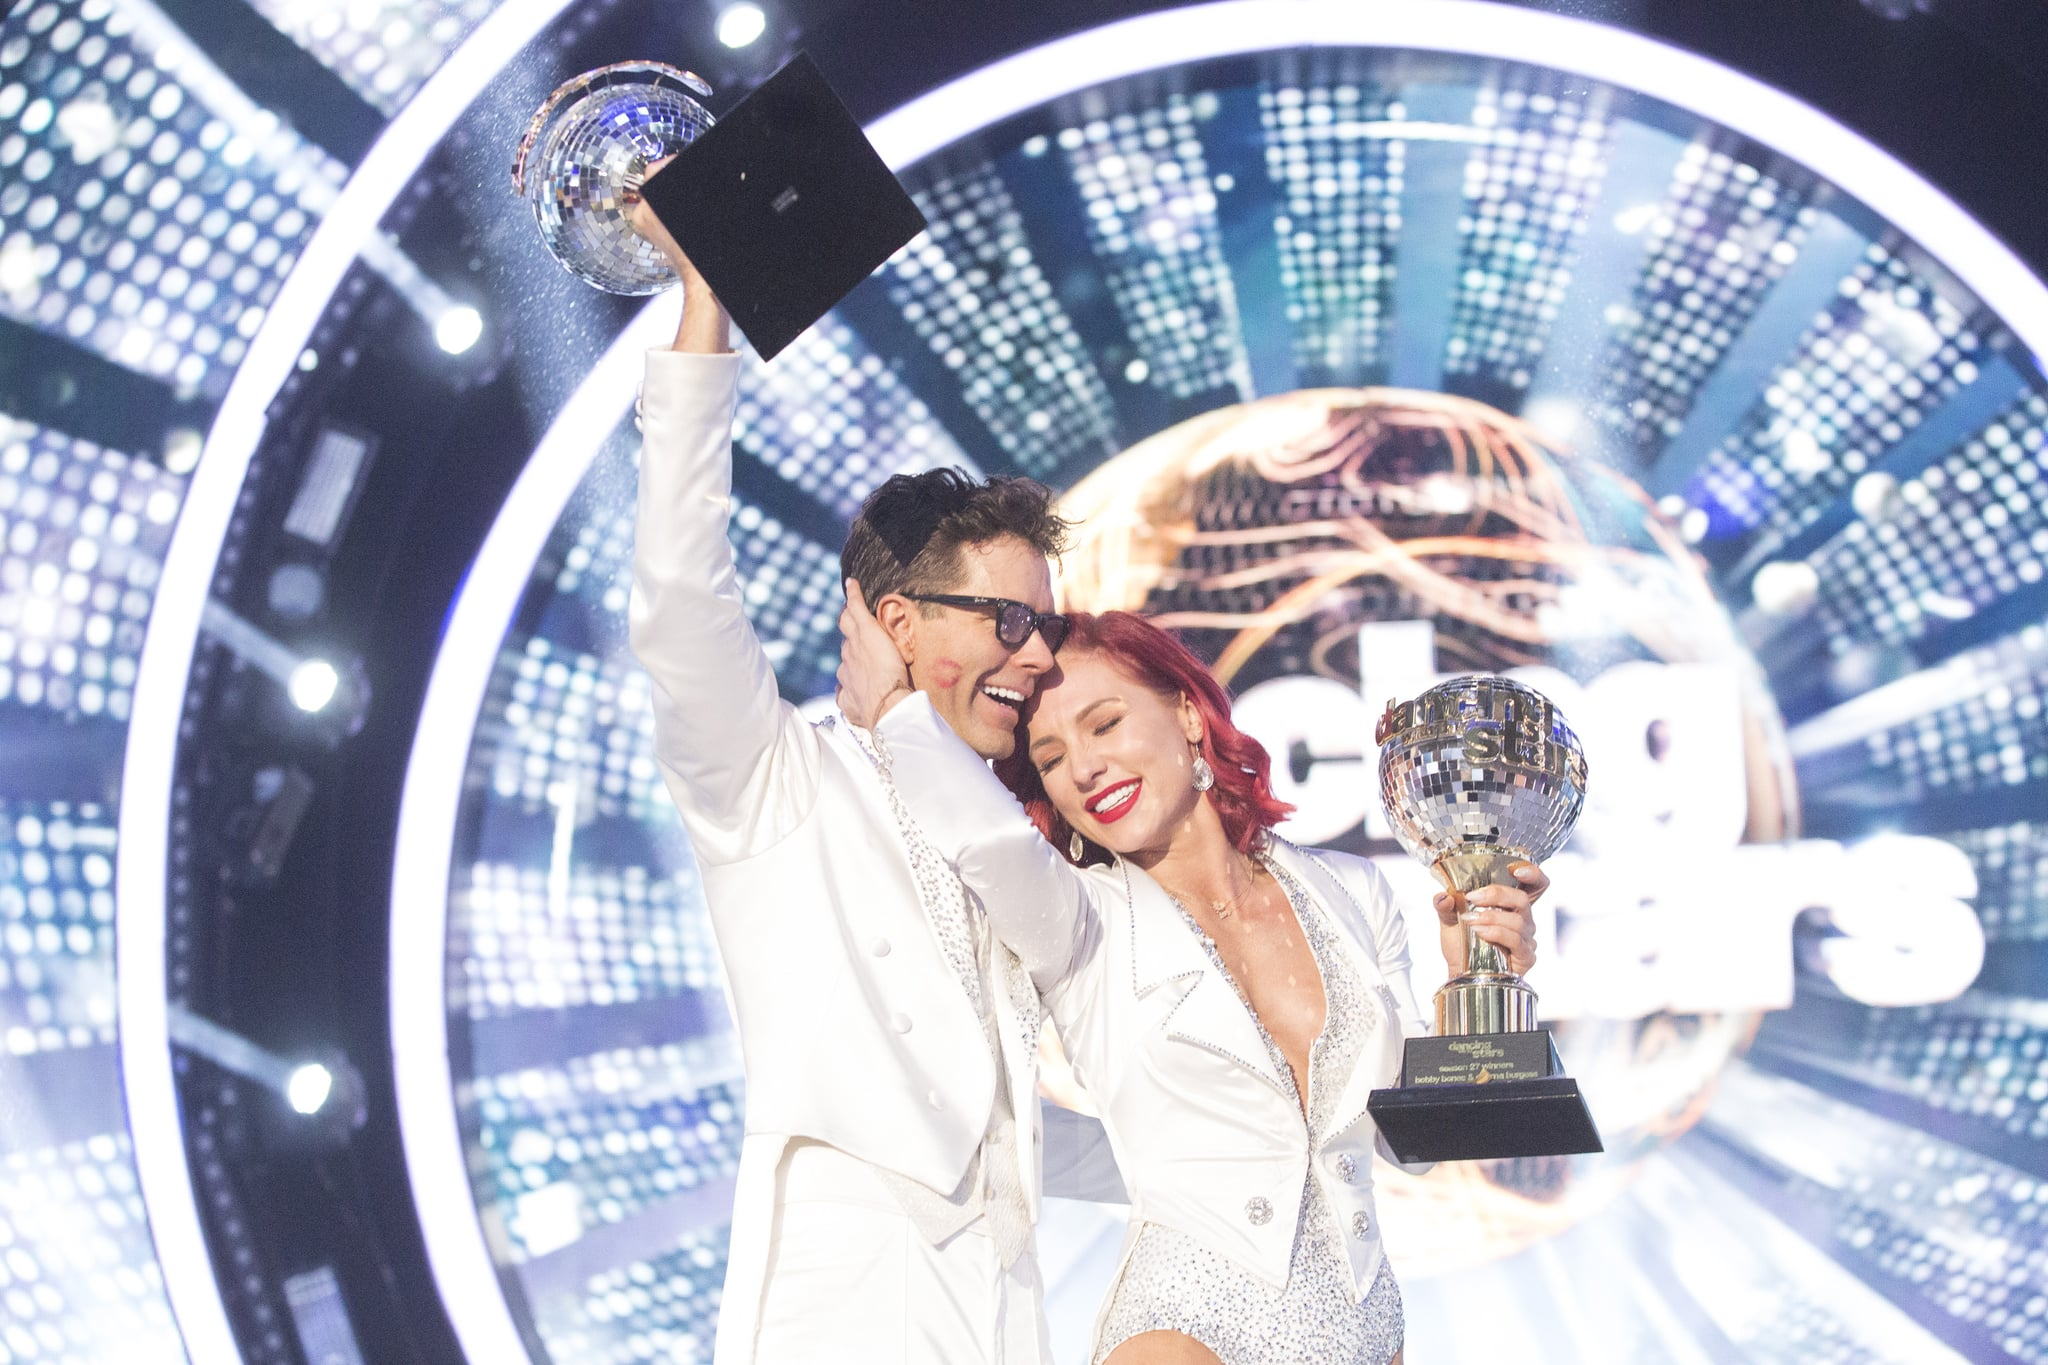 Following That Controversial Season 27 Finale, Dancing With the Stars Will Skip Spring Season